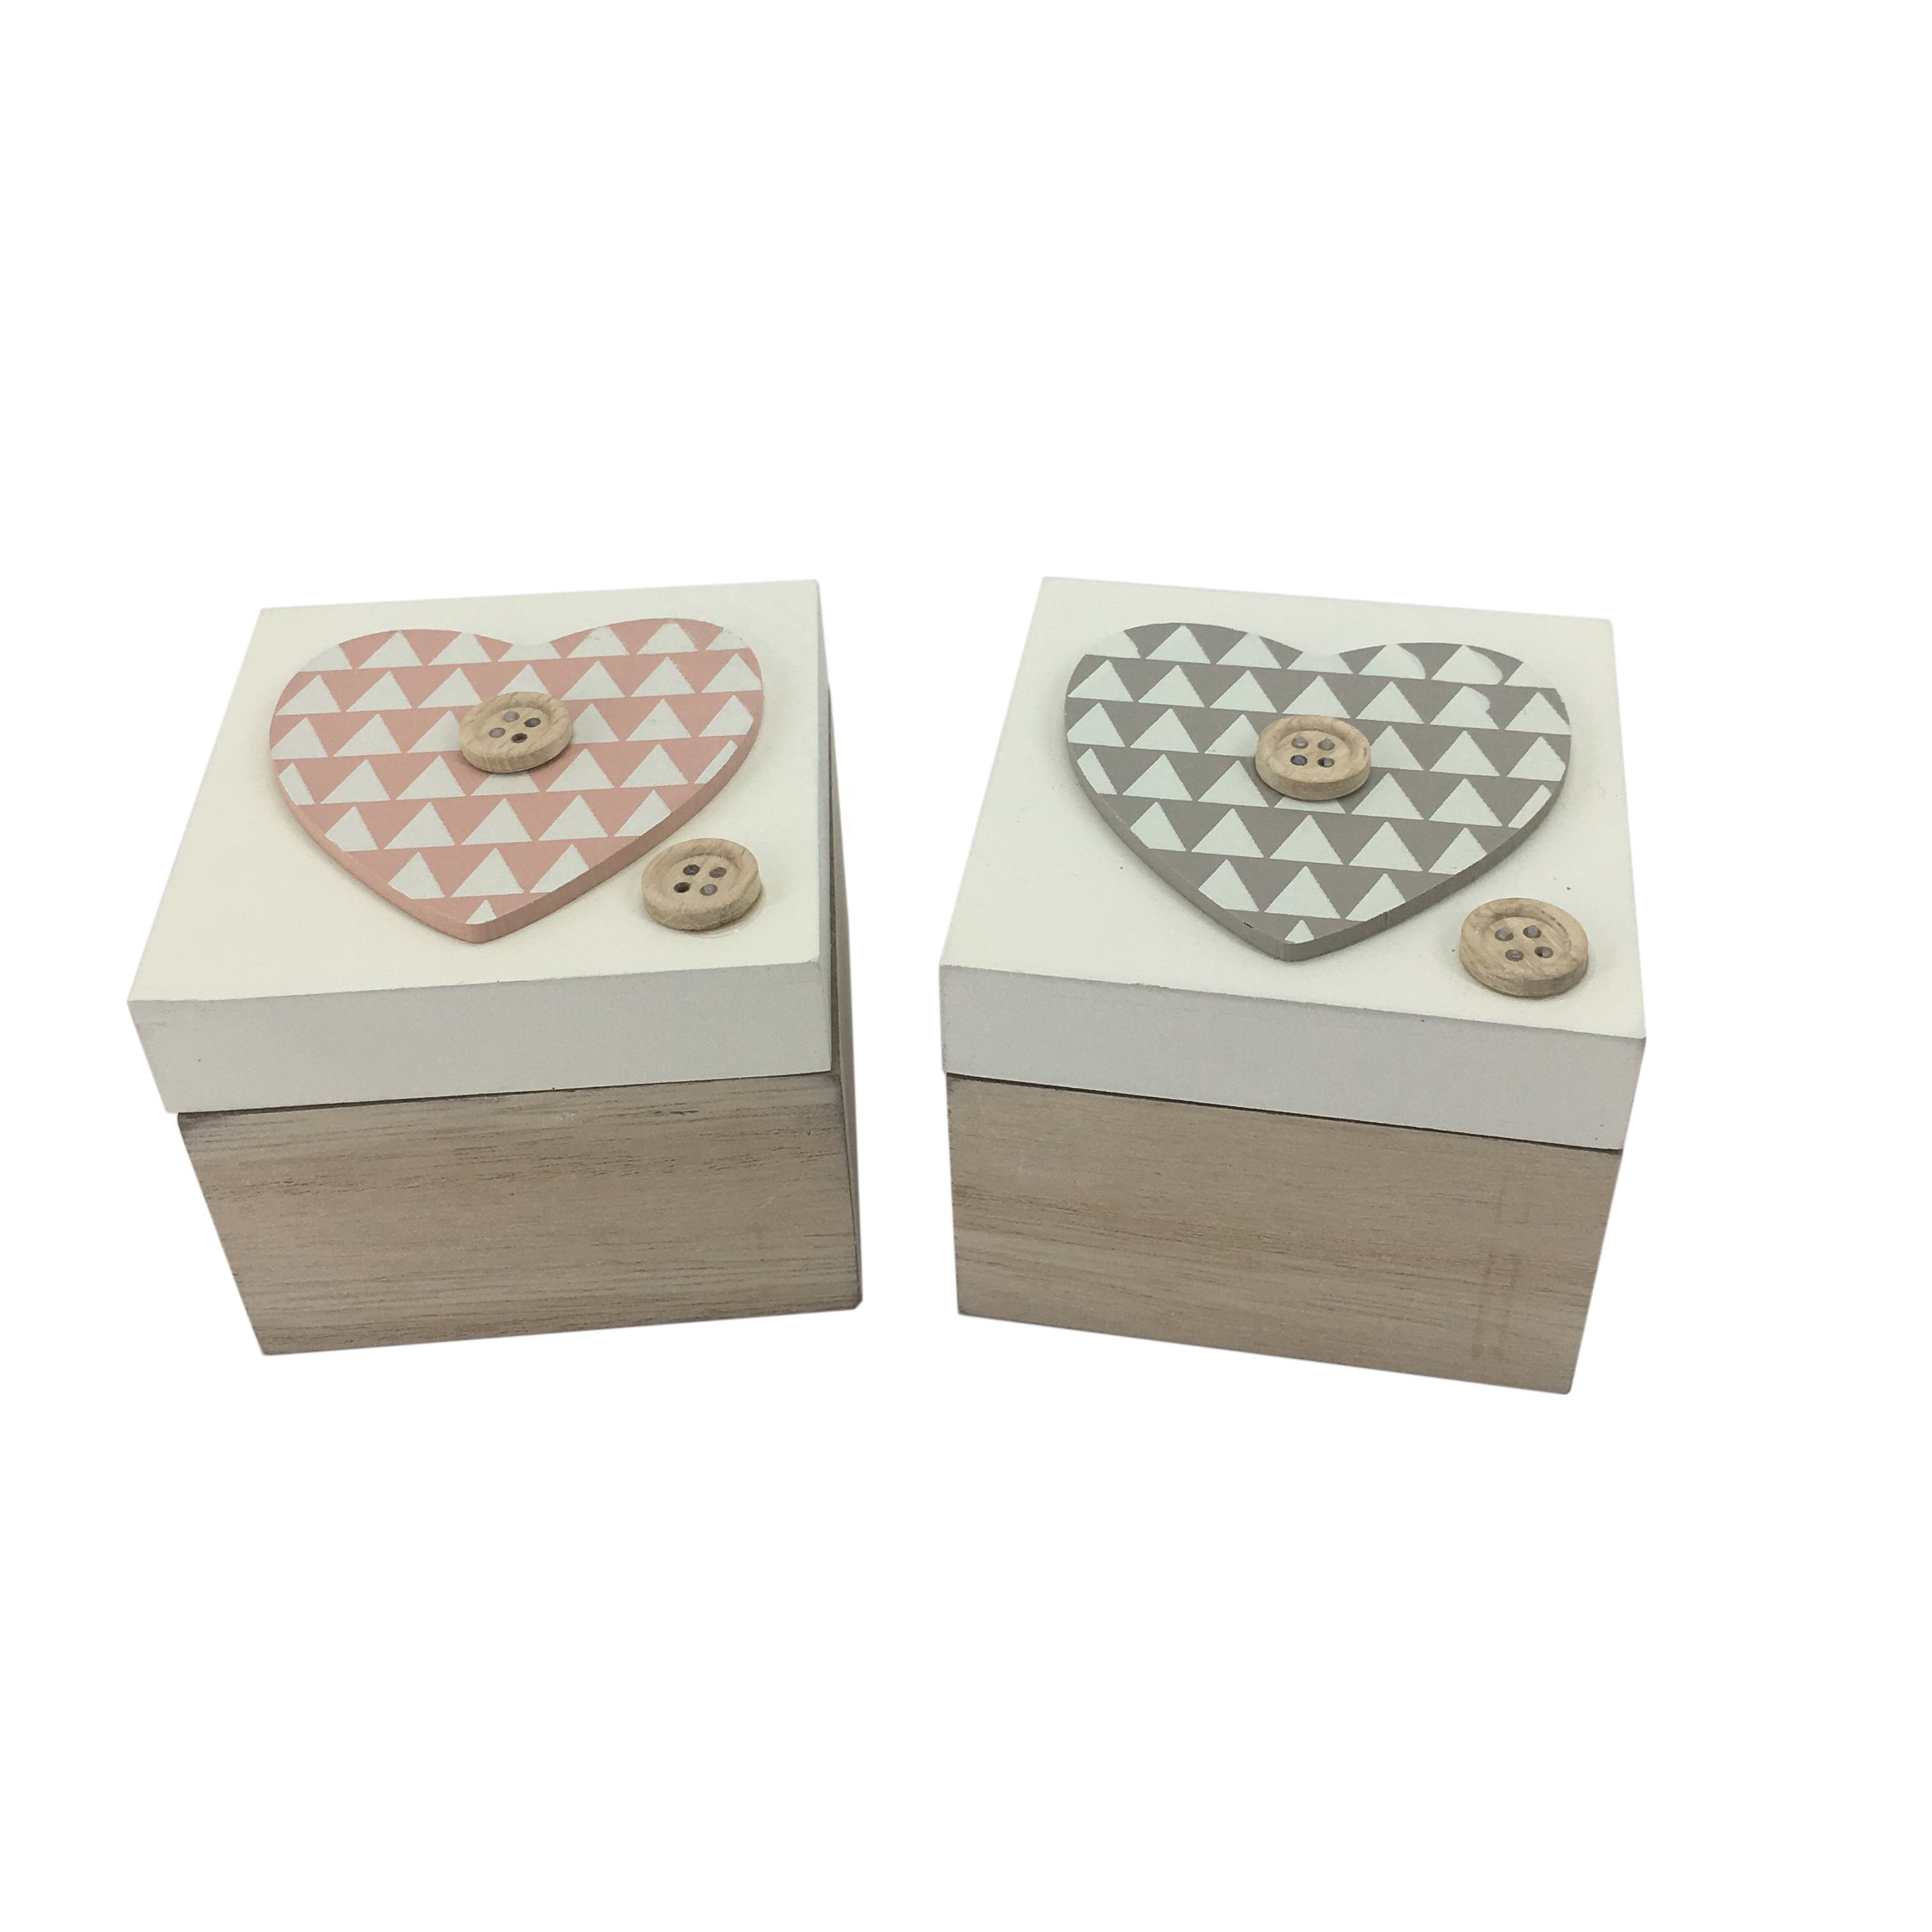 Custom Mini MDF Printed Decorative Square Packaging Gift Small Painted Wooden Craft Storage Box For Decor